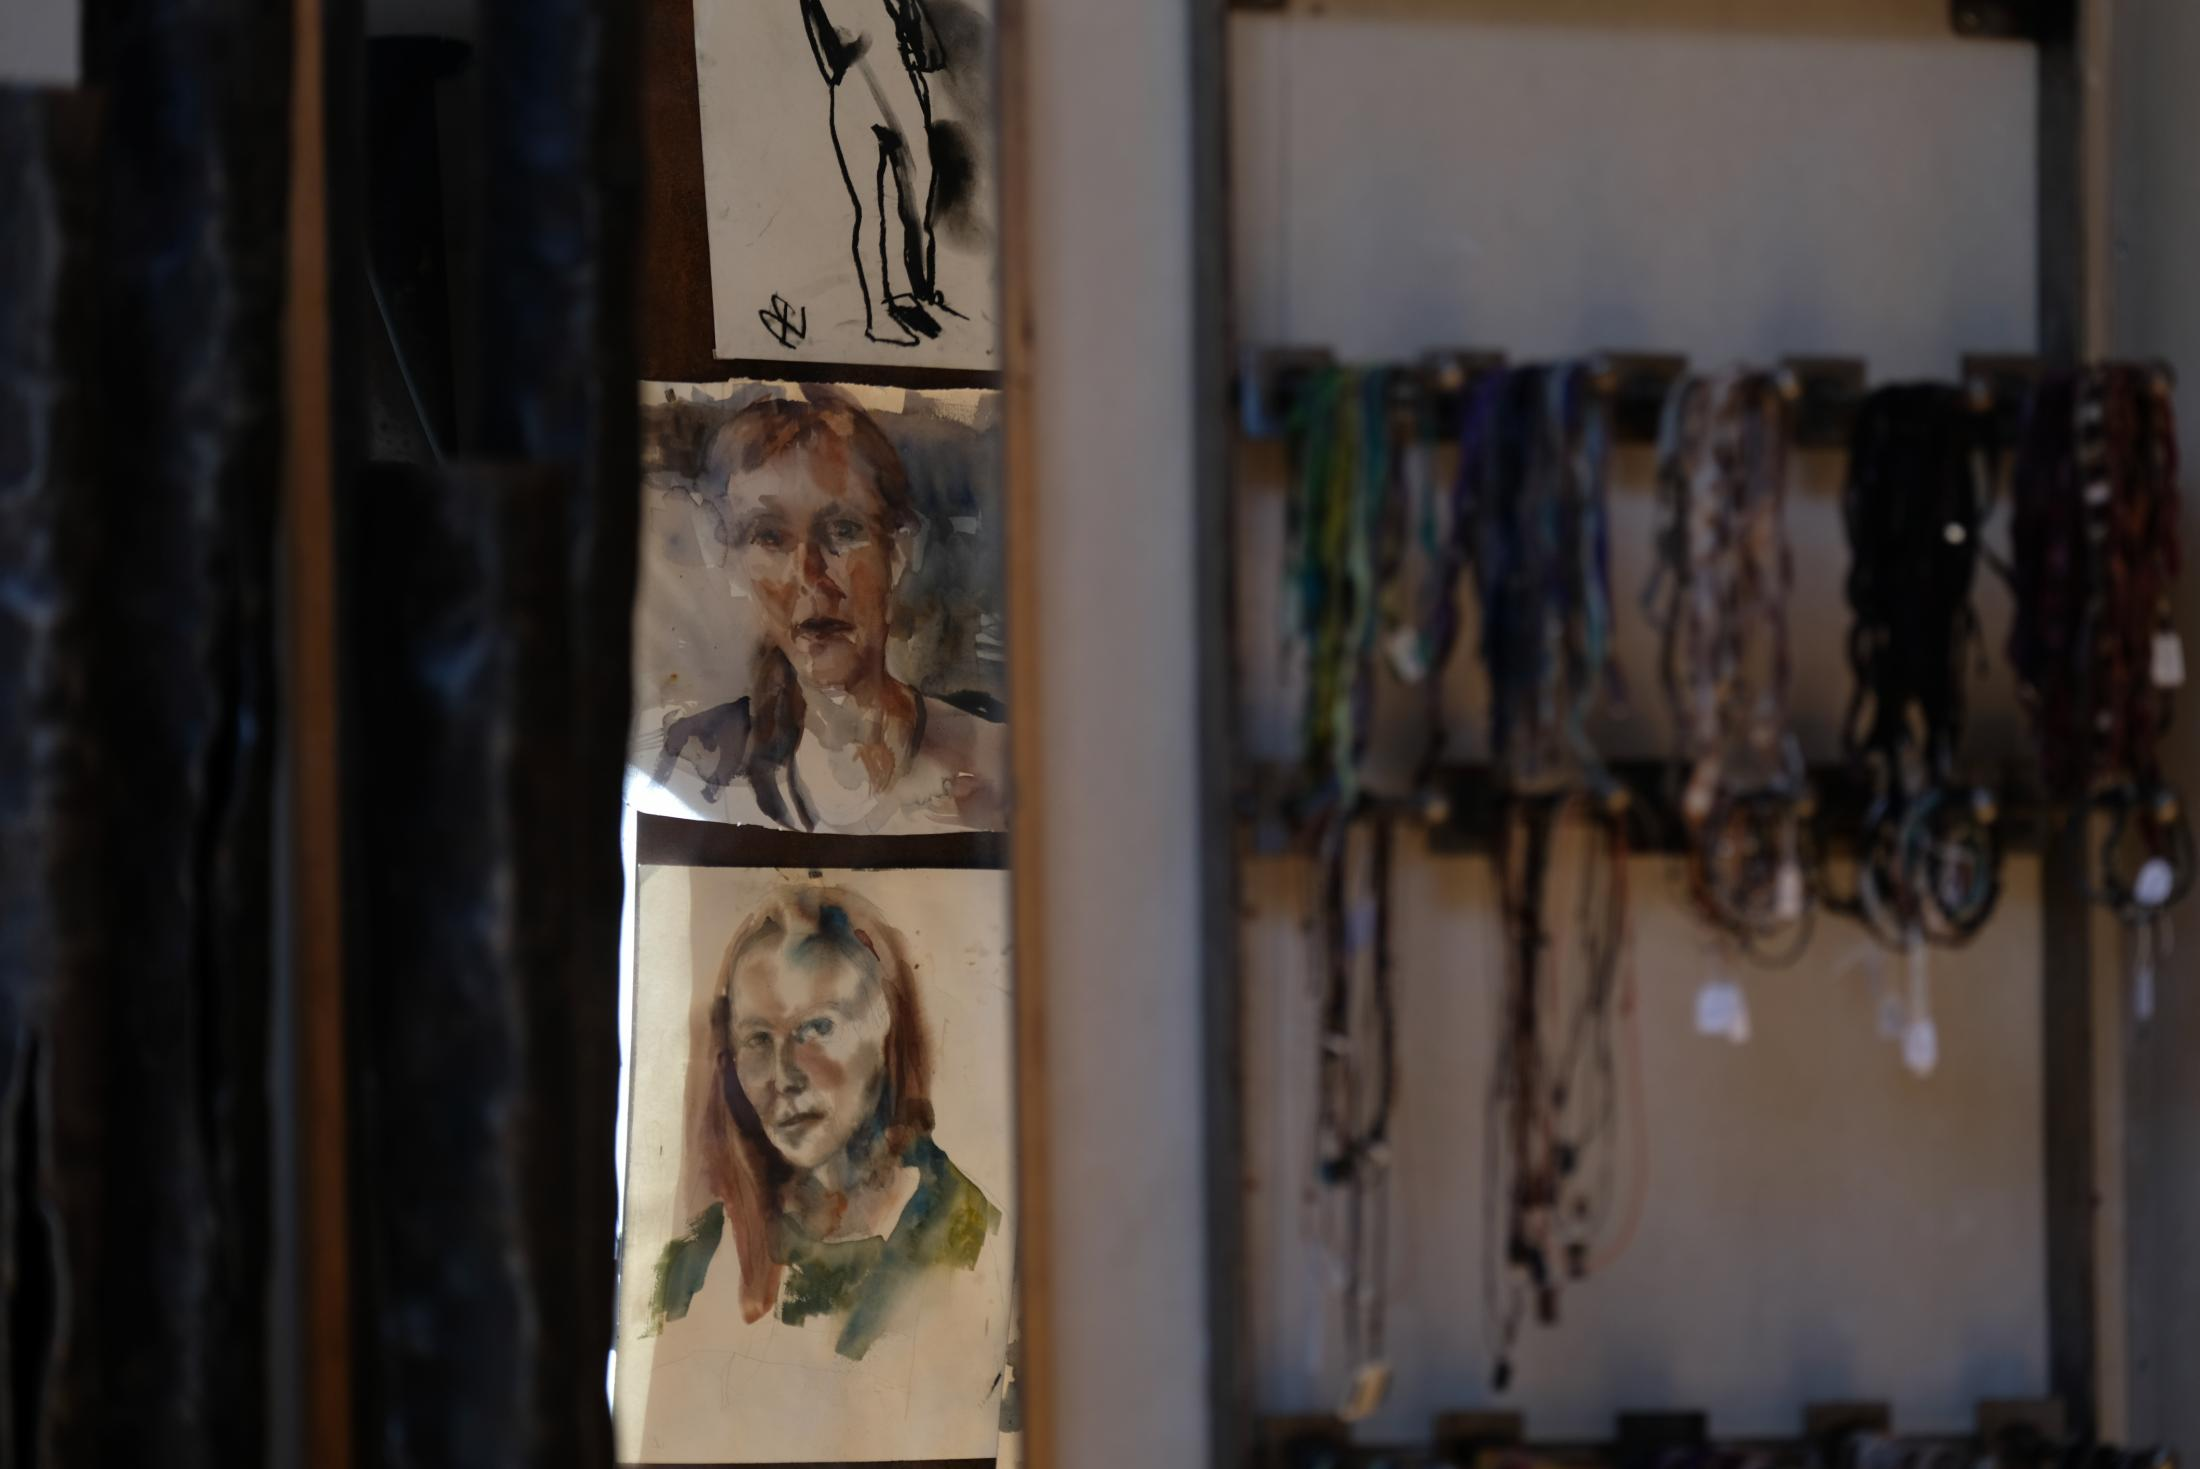 Due to COVID 19, she was forced to close down her gallery store in central Stockholm. She then turned her home boat/art workshop into a gallery exhibit and shop.